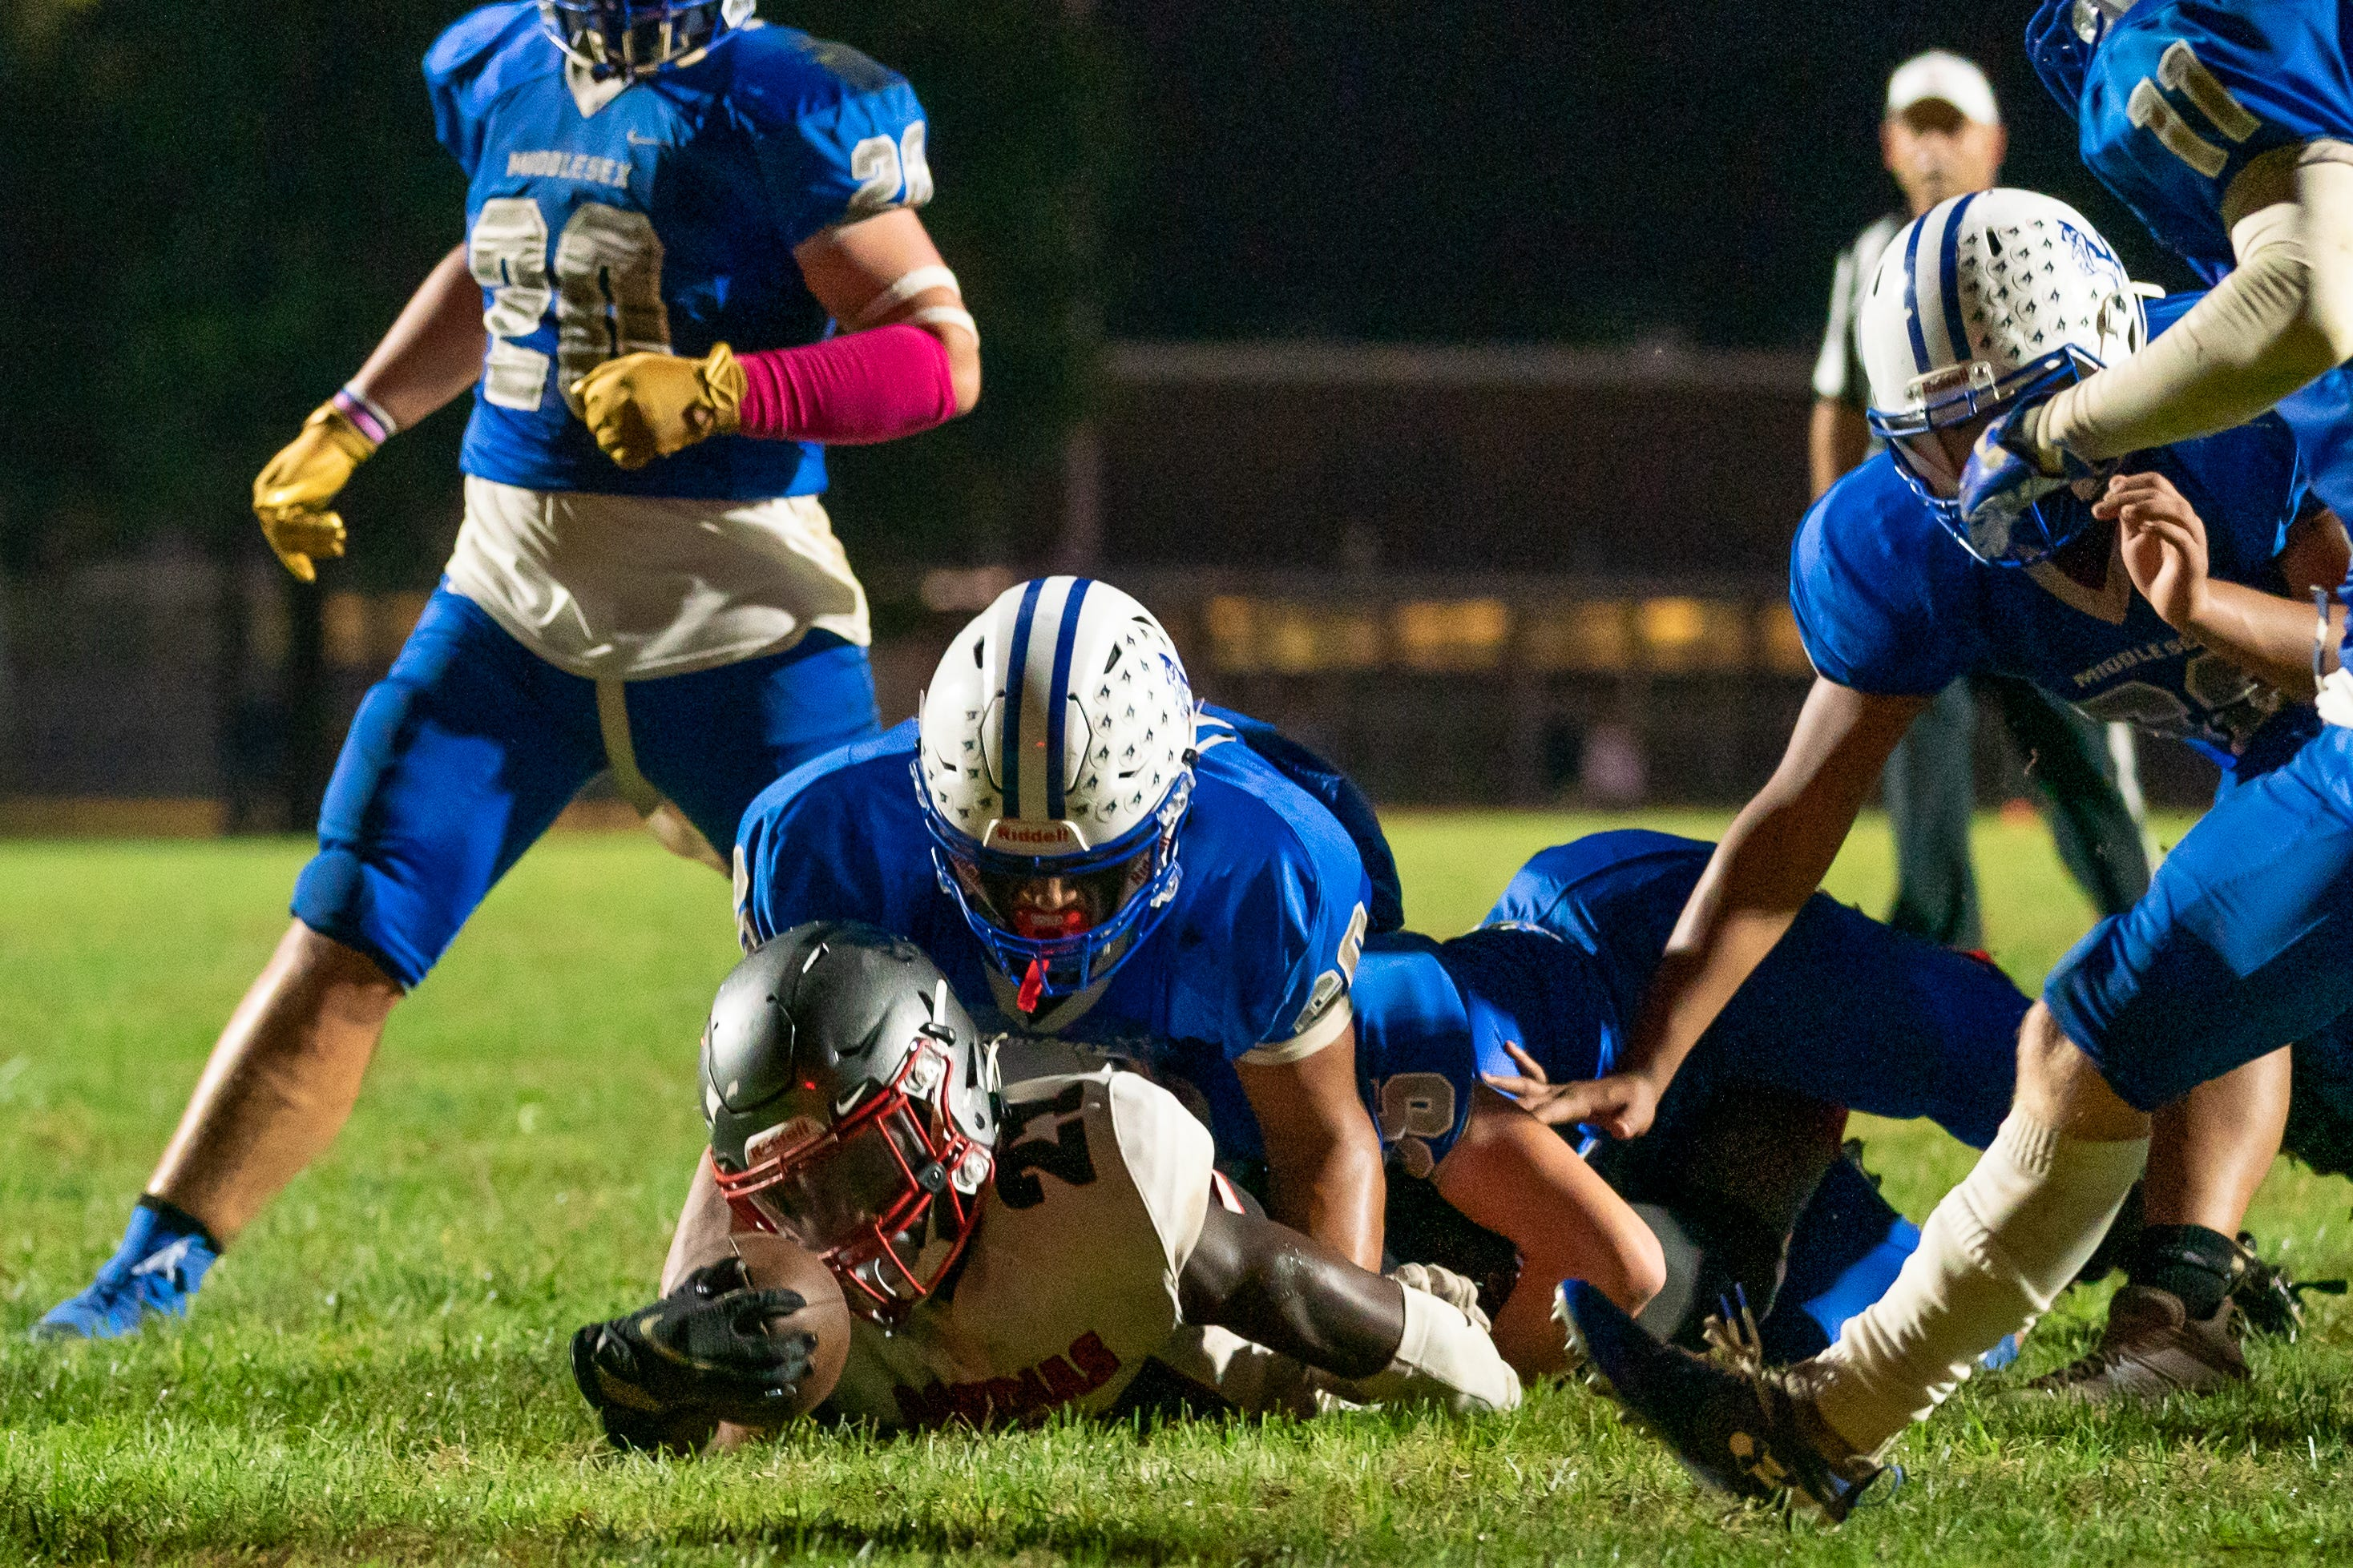 FOOTBALL RESULTS: Big Central Conference and area roundup for Week 8